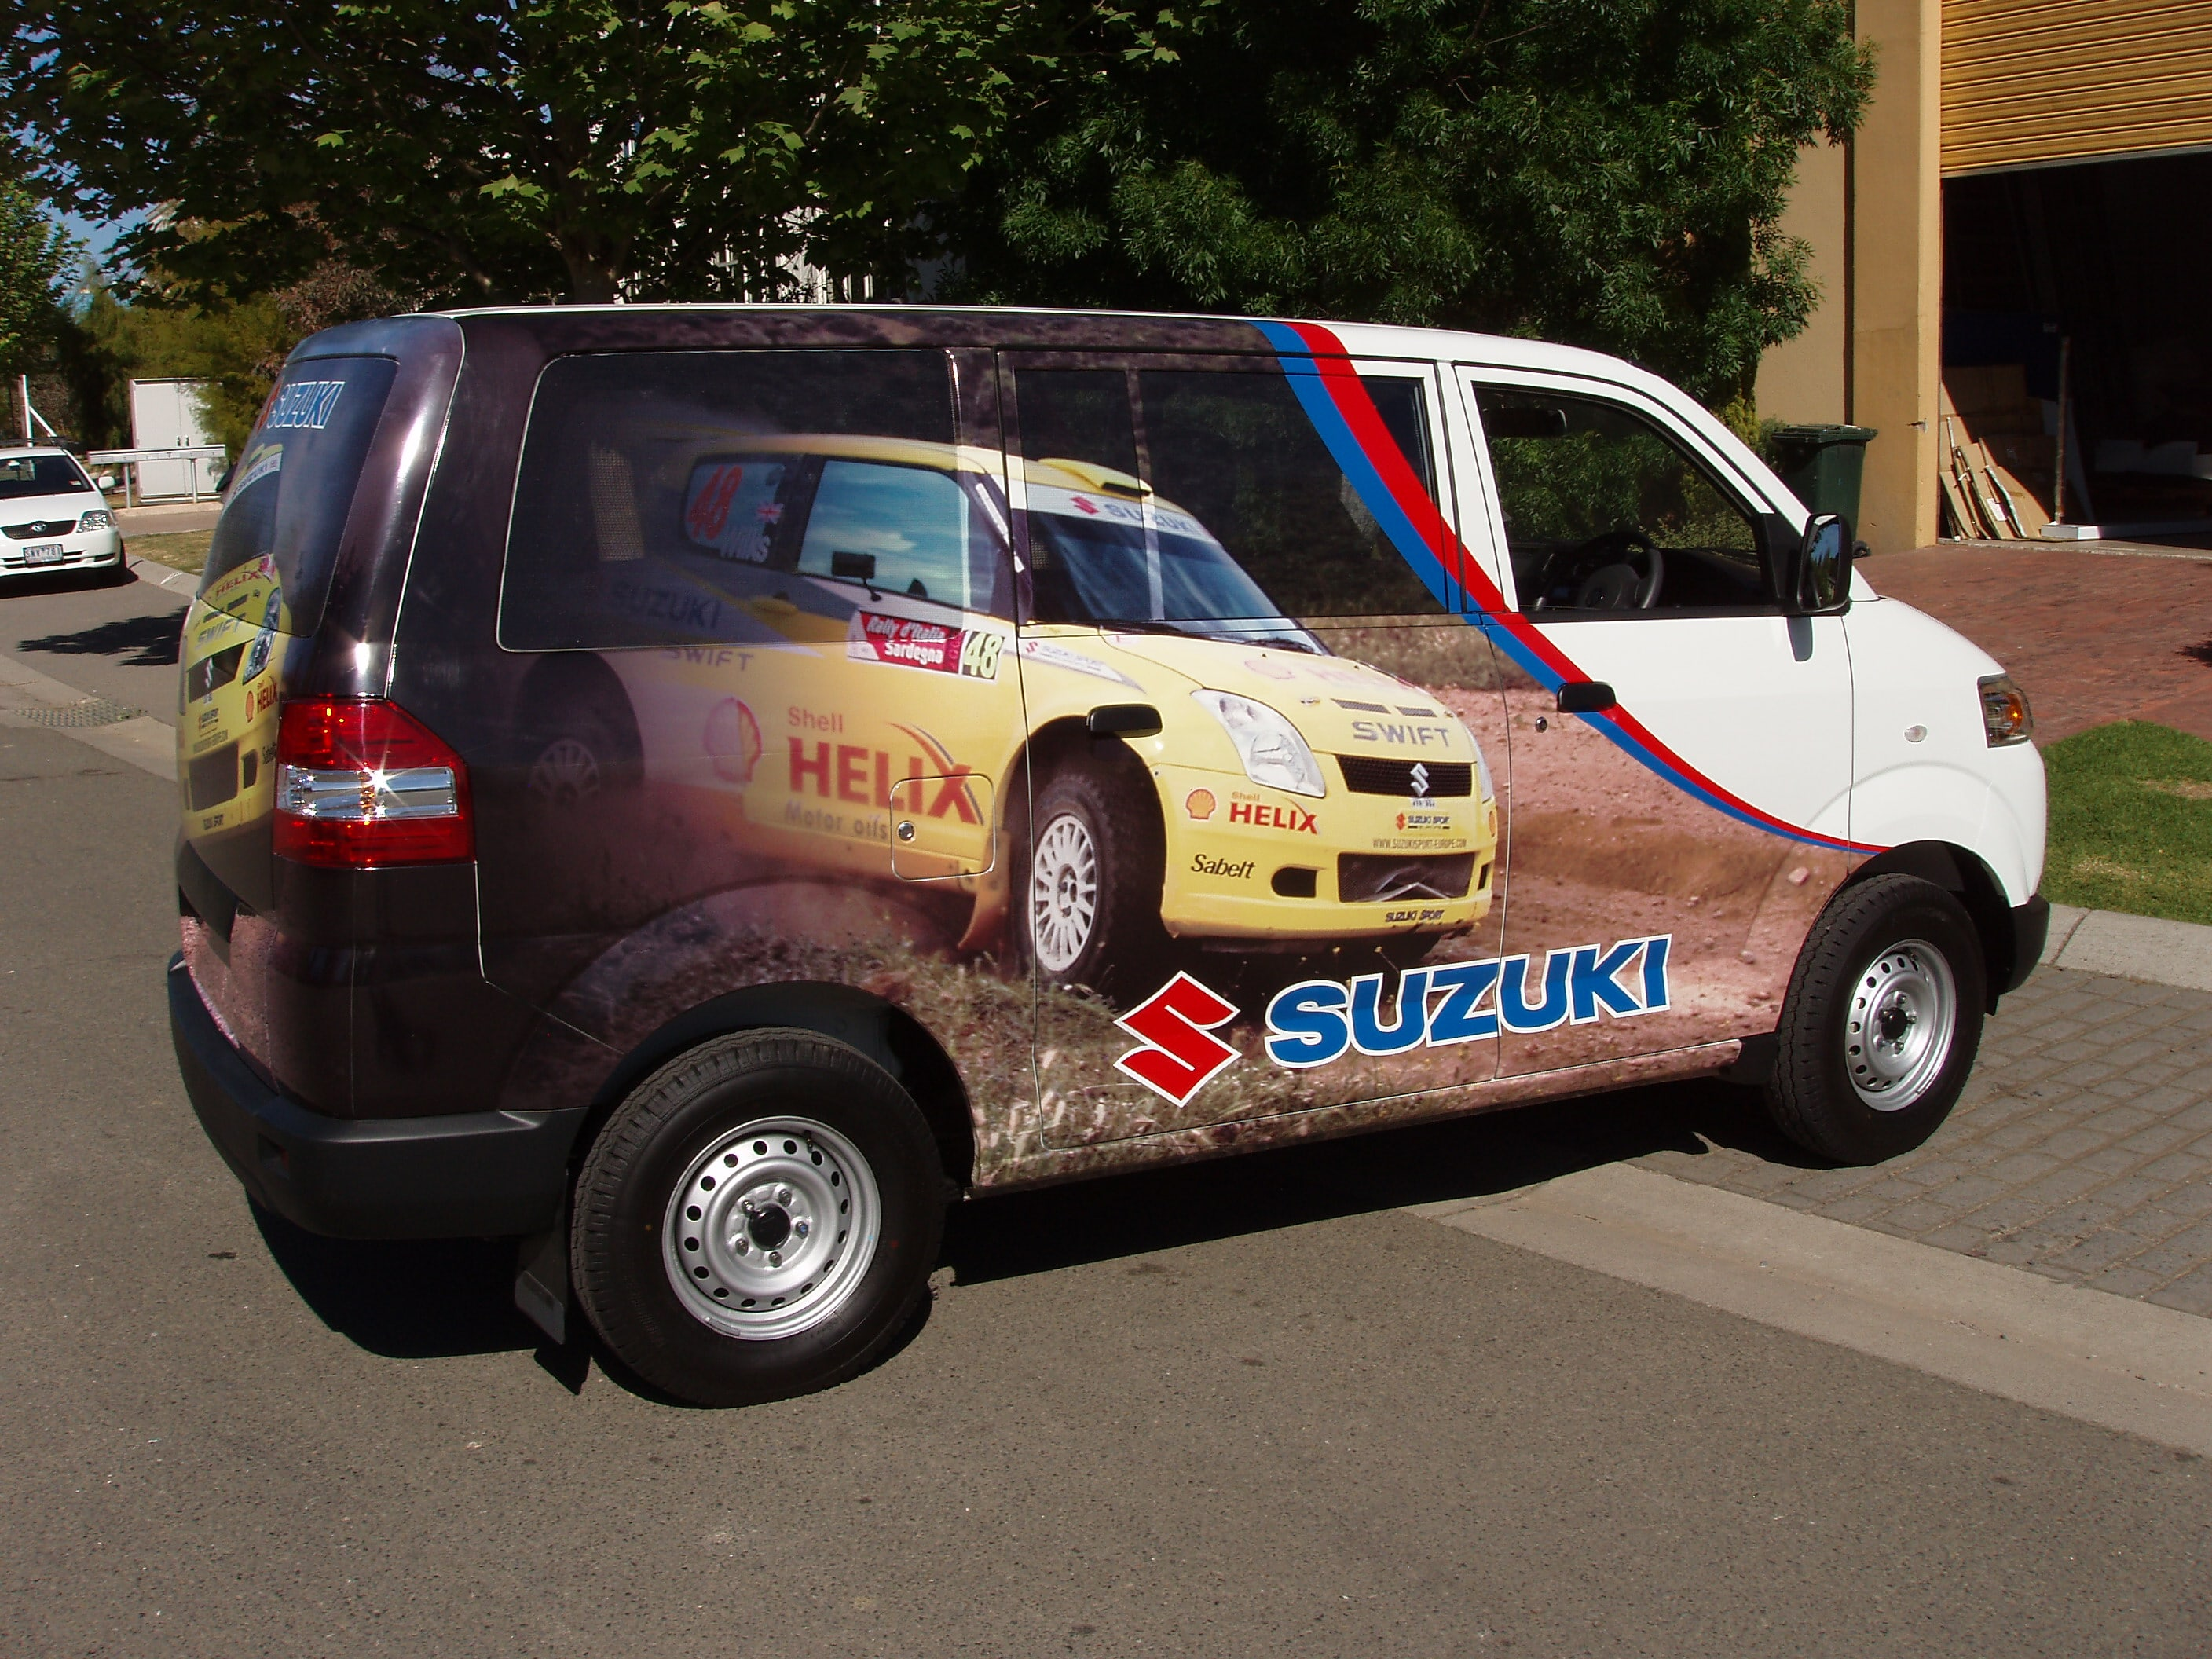 Van team Suzuki vehicle signage right side view